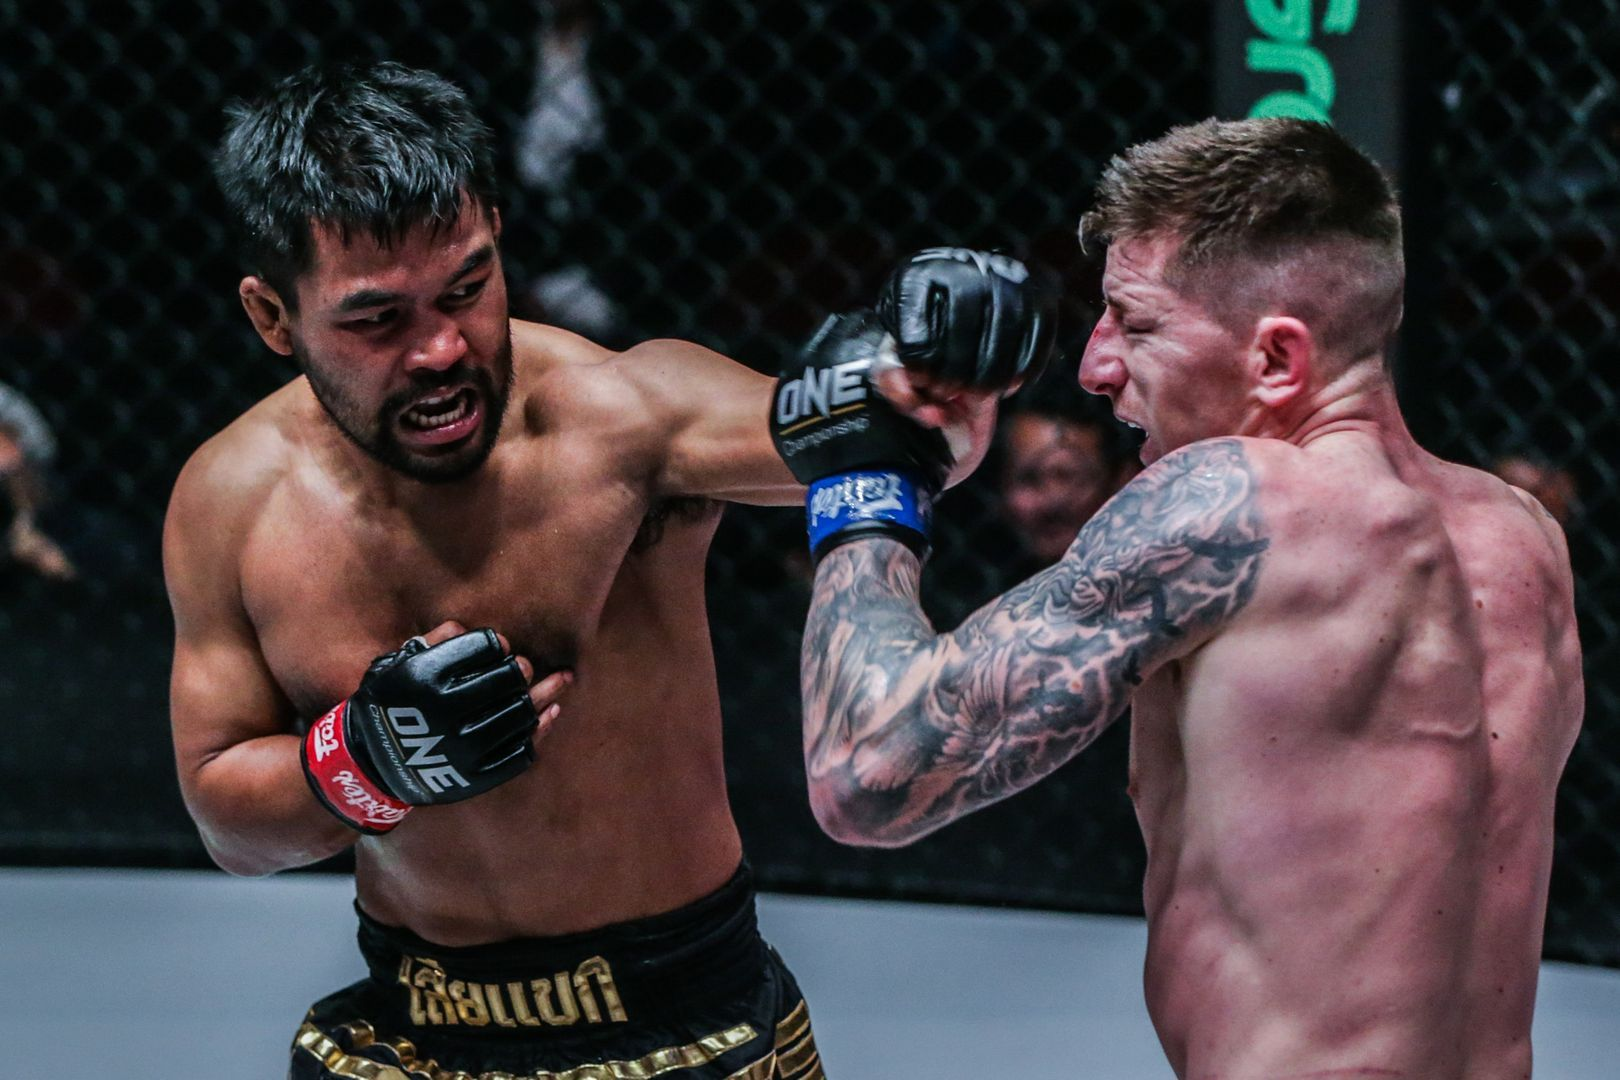 Thailand's Rodlek PK.Saenchaimuaythaigym and Scotland's Chris Shaw compete in ONE Championship